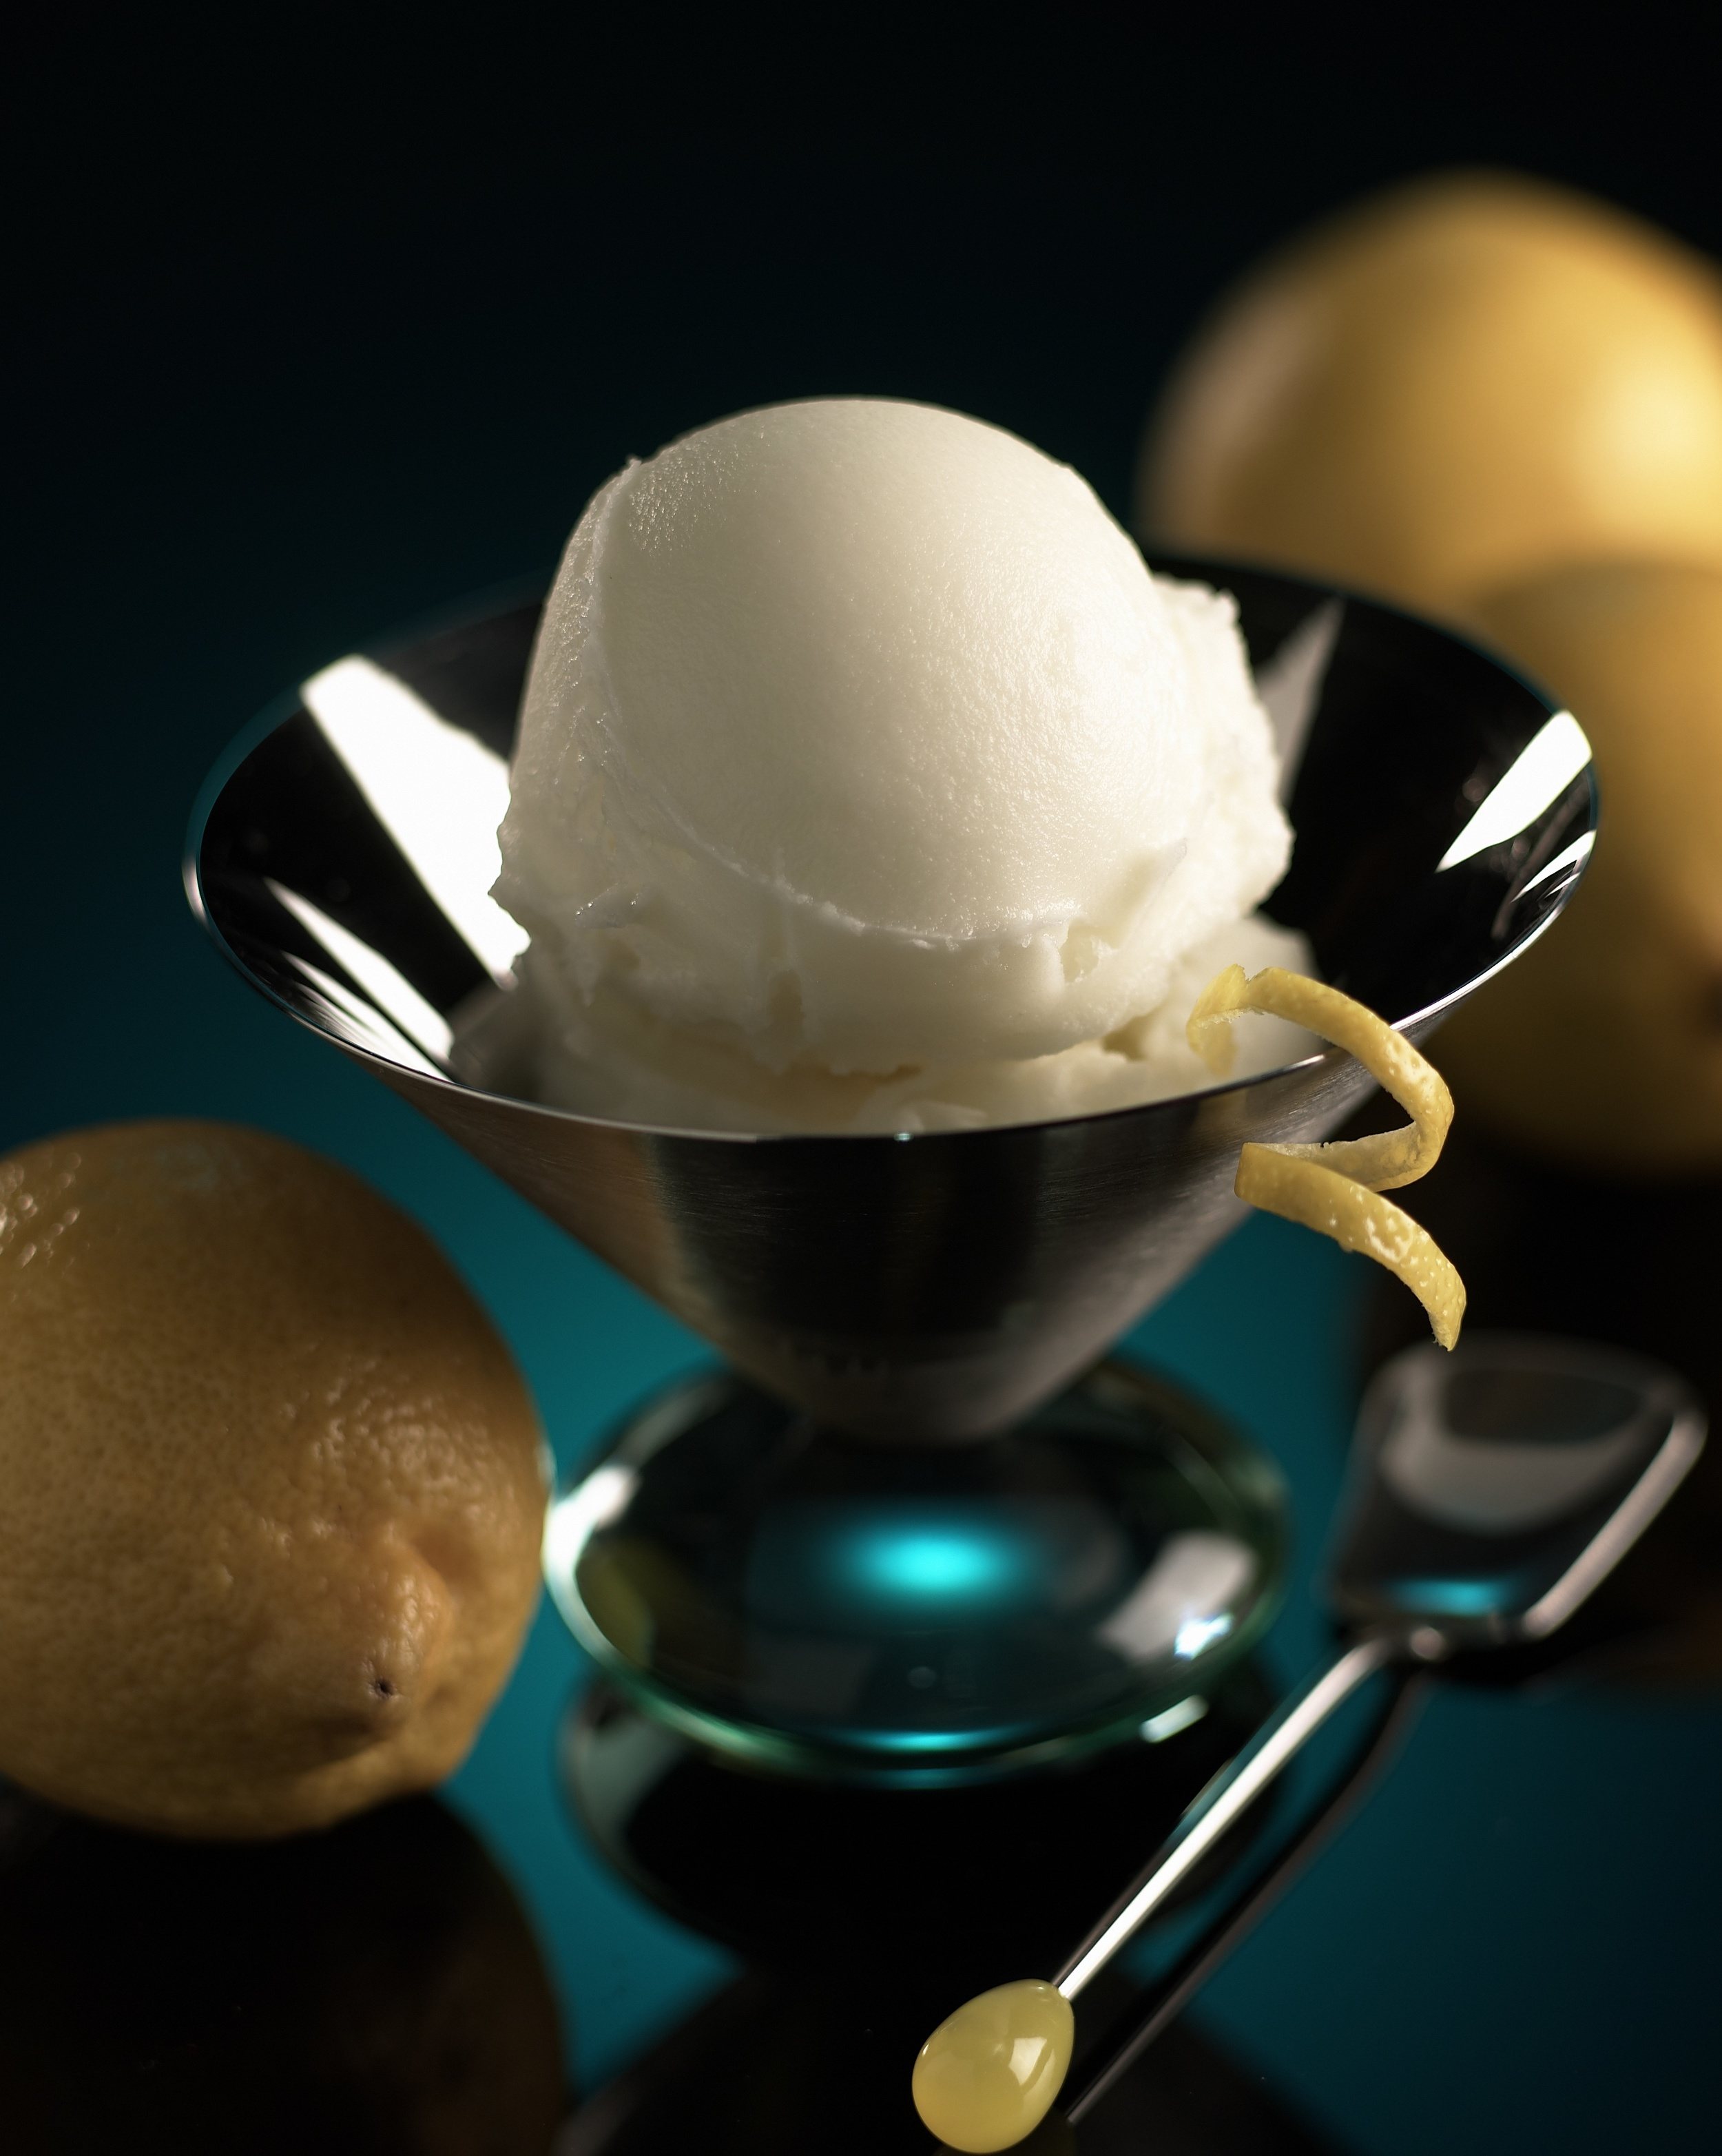 Scoop Sicilian Lemon Sorbet